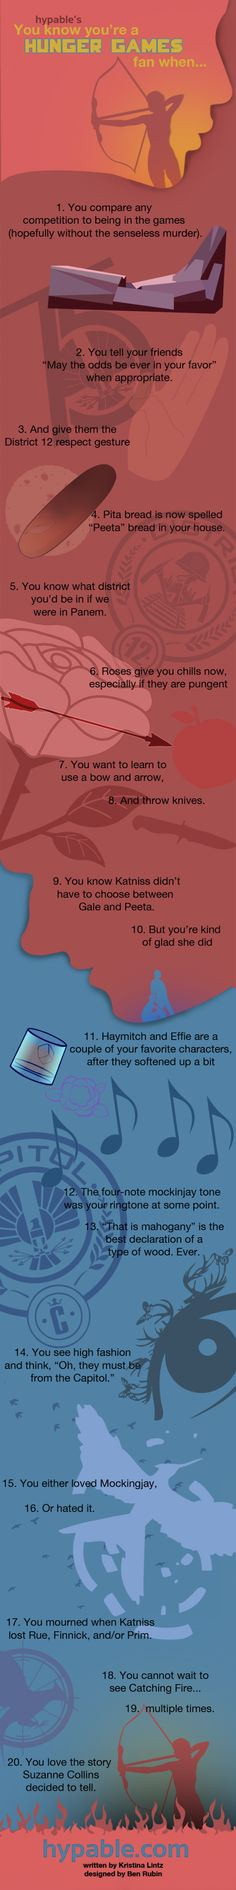 You know Katniss didn't have to choose between Peeta and Gale, but you're kind of glad she did... I know this story is about so much more than a love triangle, but peeta and Katniss are amazing!